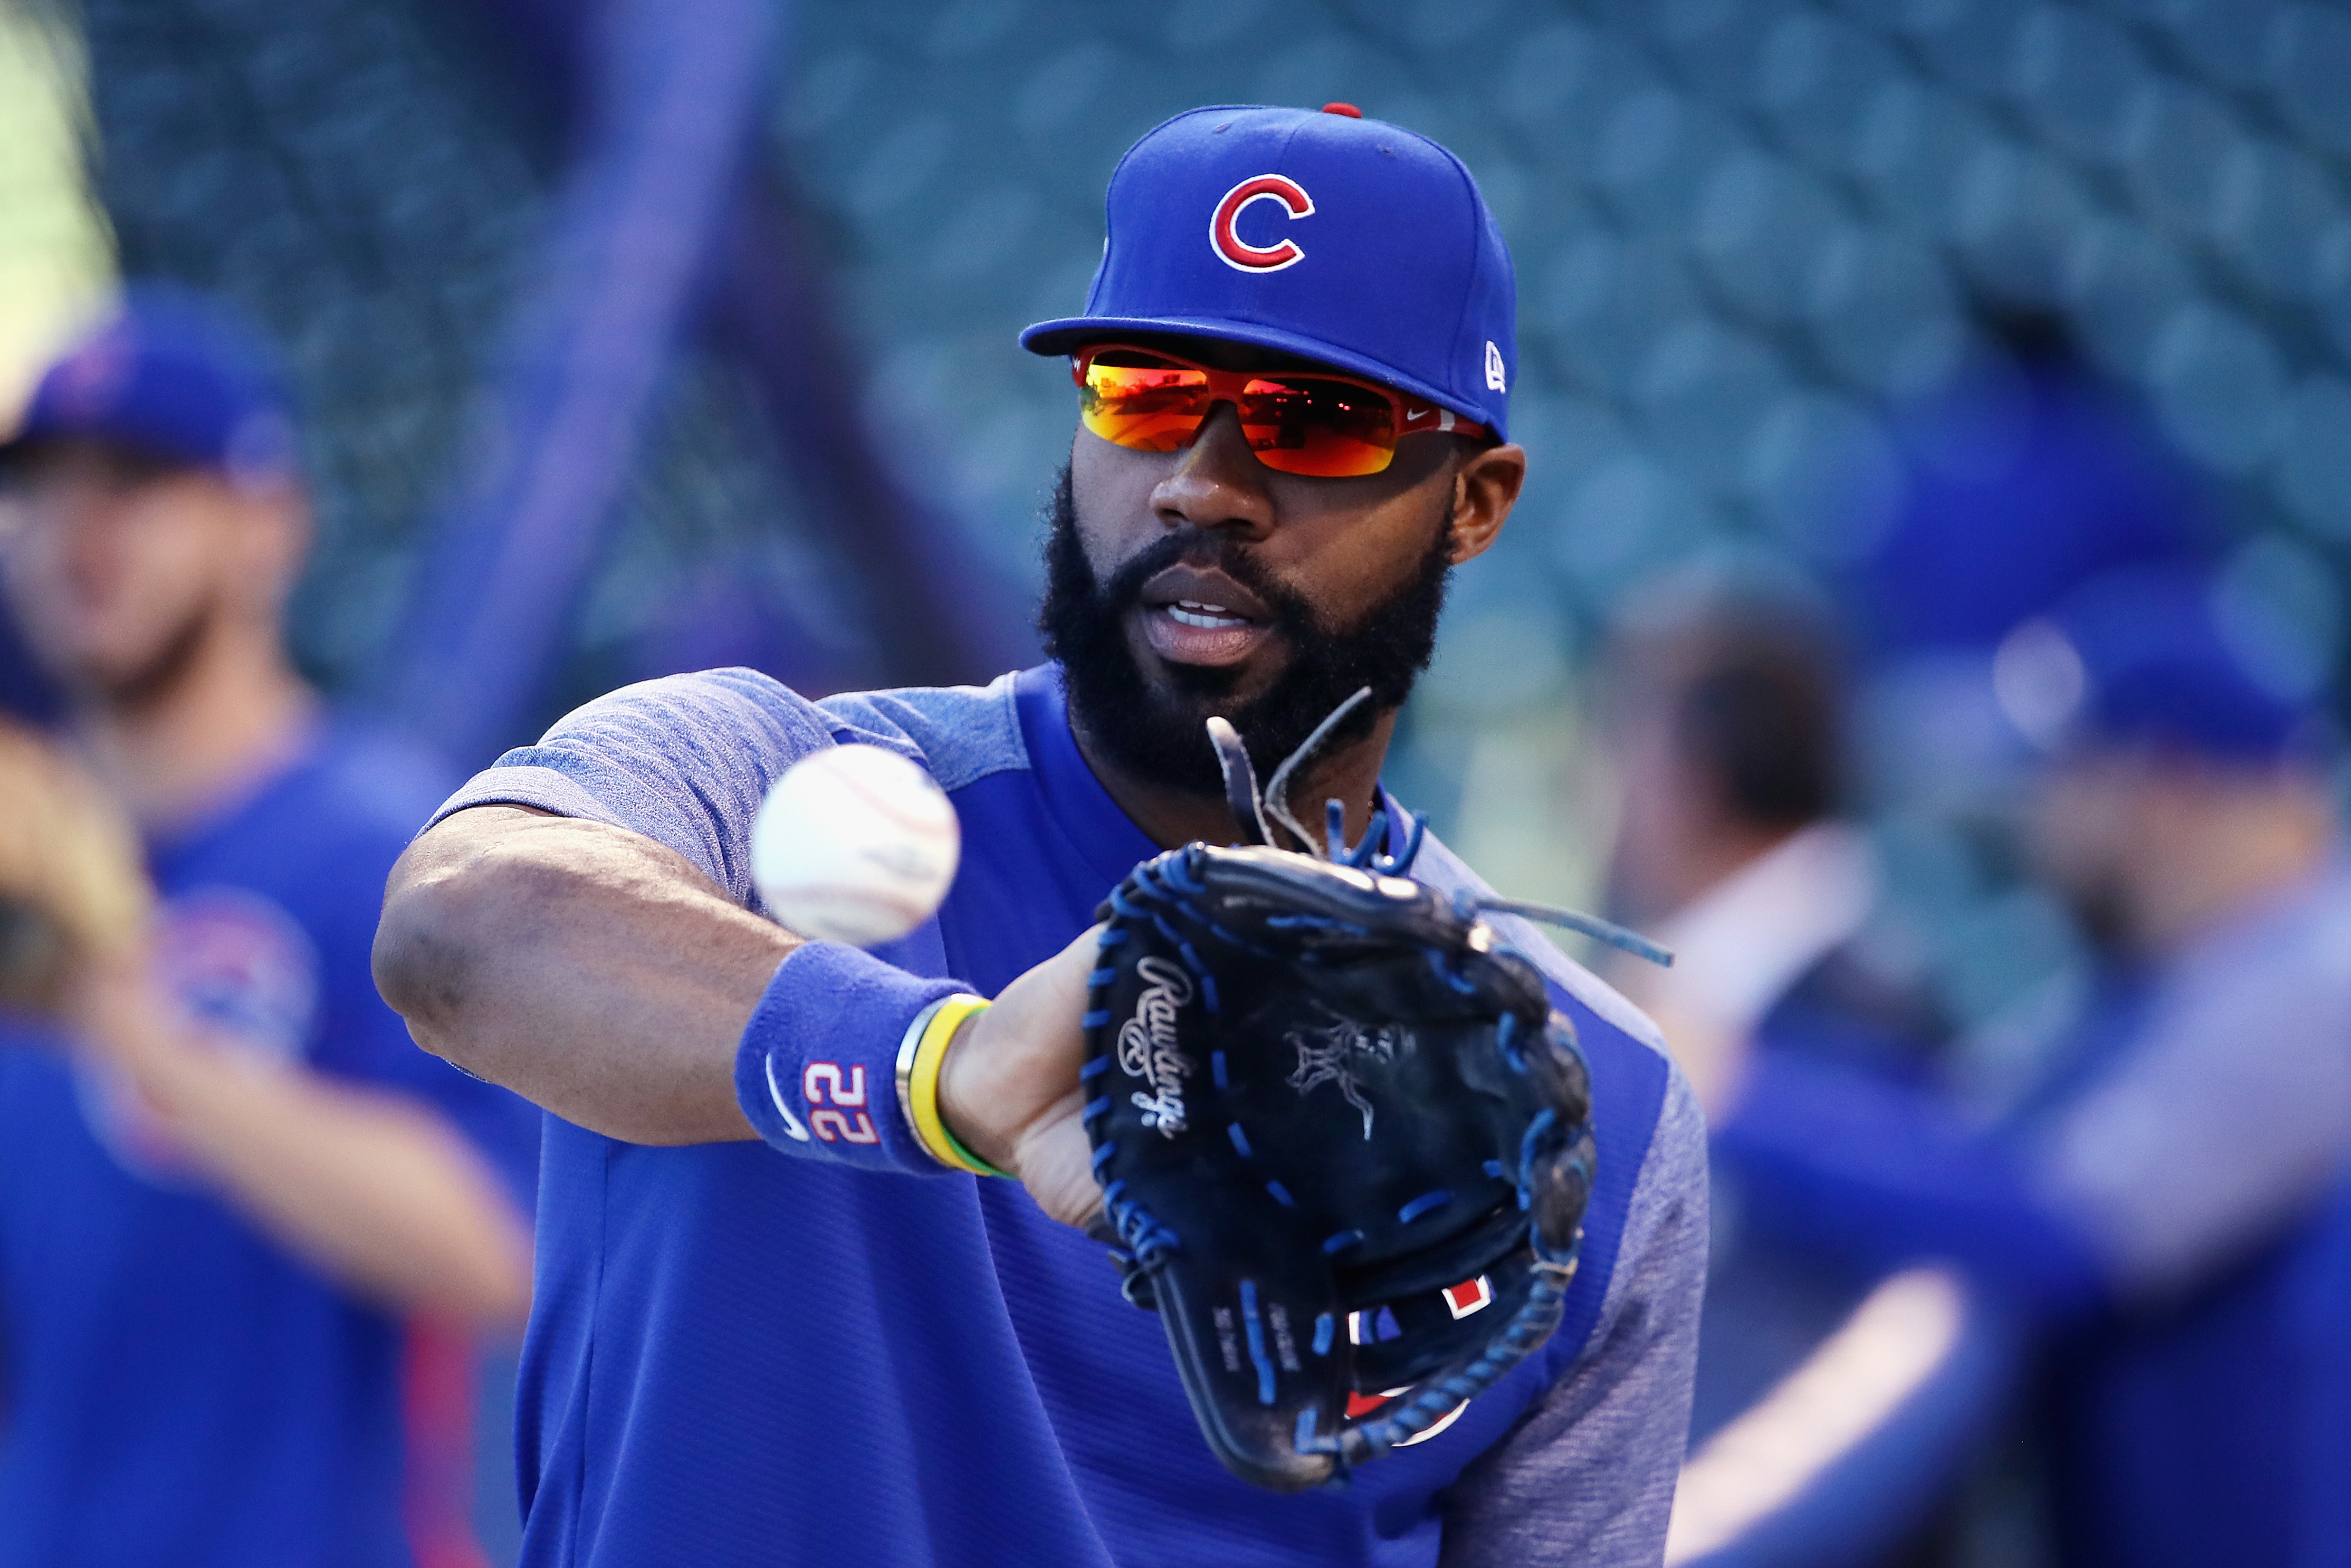 Fantasy Baseball 2018: Stay away from these draft duds